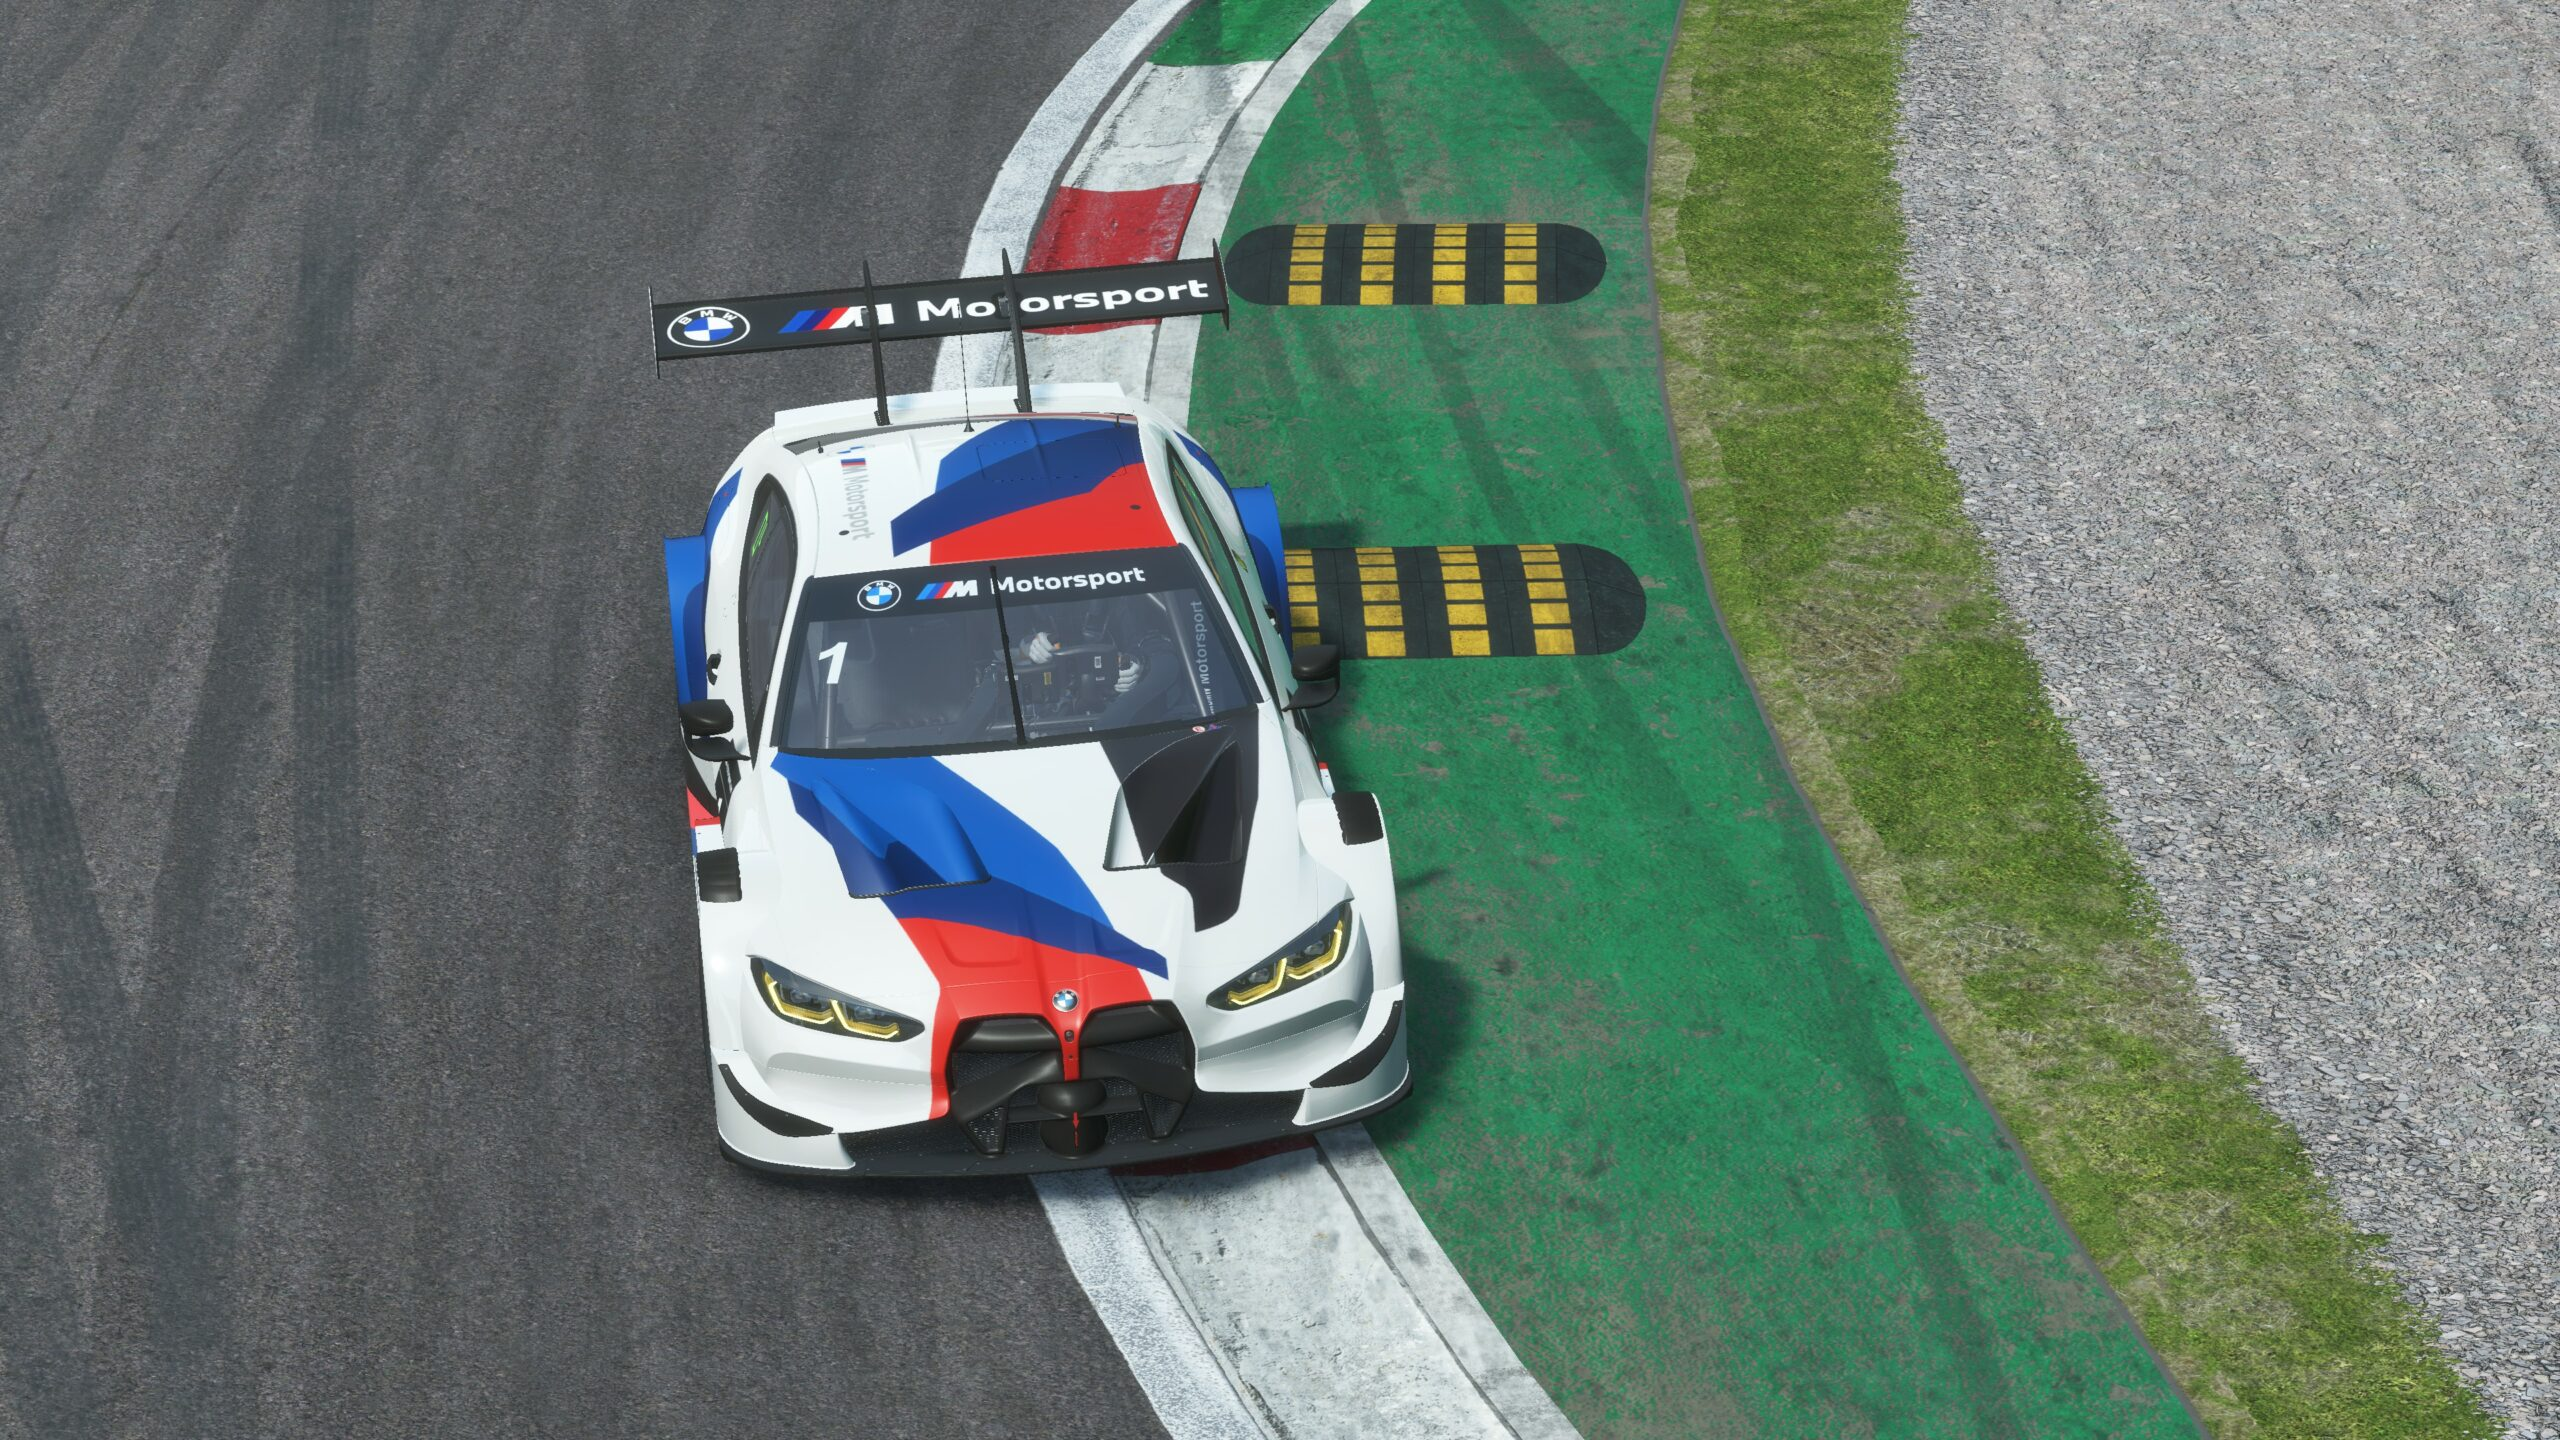 Hands-on with the new BMW M4 Class1 and Monza in rFactor 2